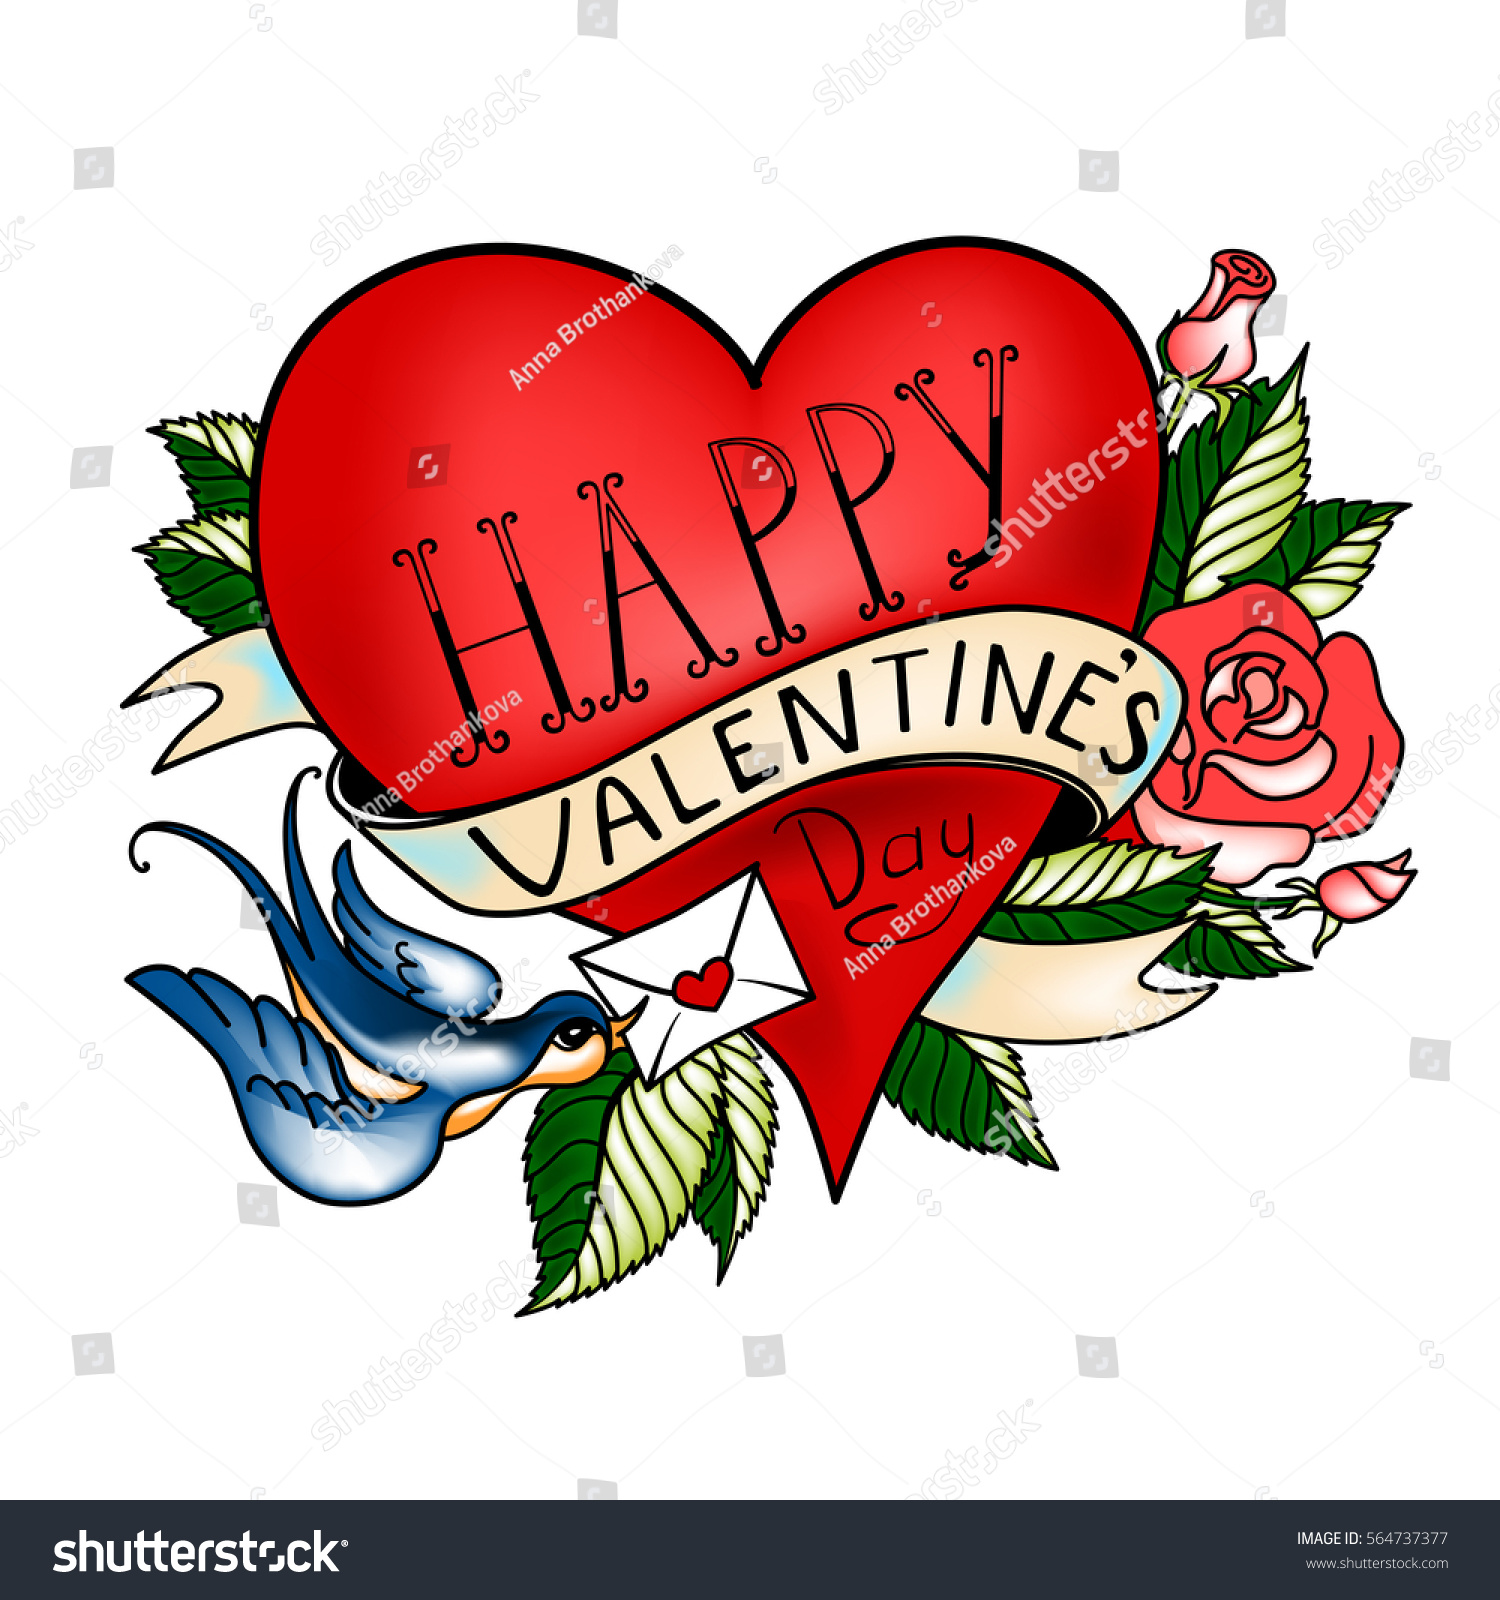 Vector valentines day greeting card heart stock vector royalty free vector valentines day greeting card with heart made in classic old school tattoo style m4hsunfo